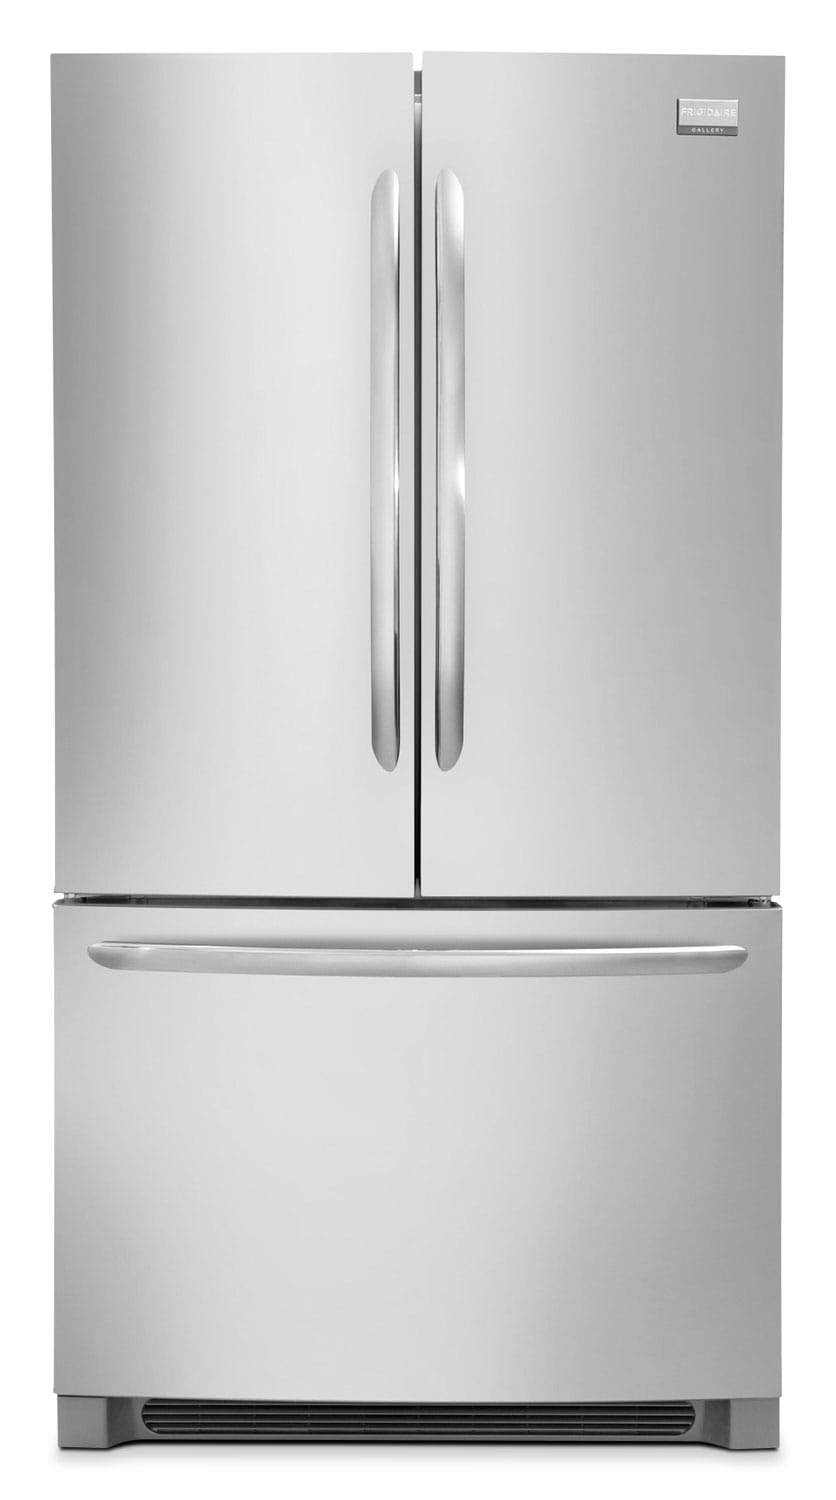 Refrigerators and Freezers - Frigidaire Gallery Stainless Steel French Door Refrigerator (27.6 Cu. Ft.) - FGHN2866PF